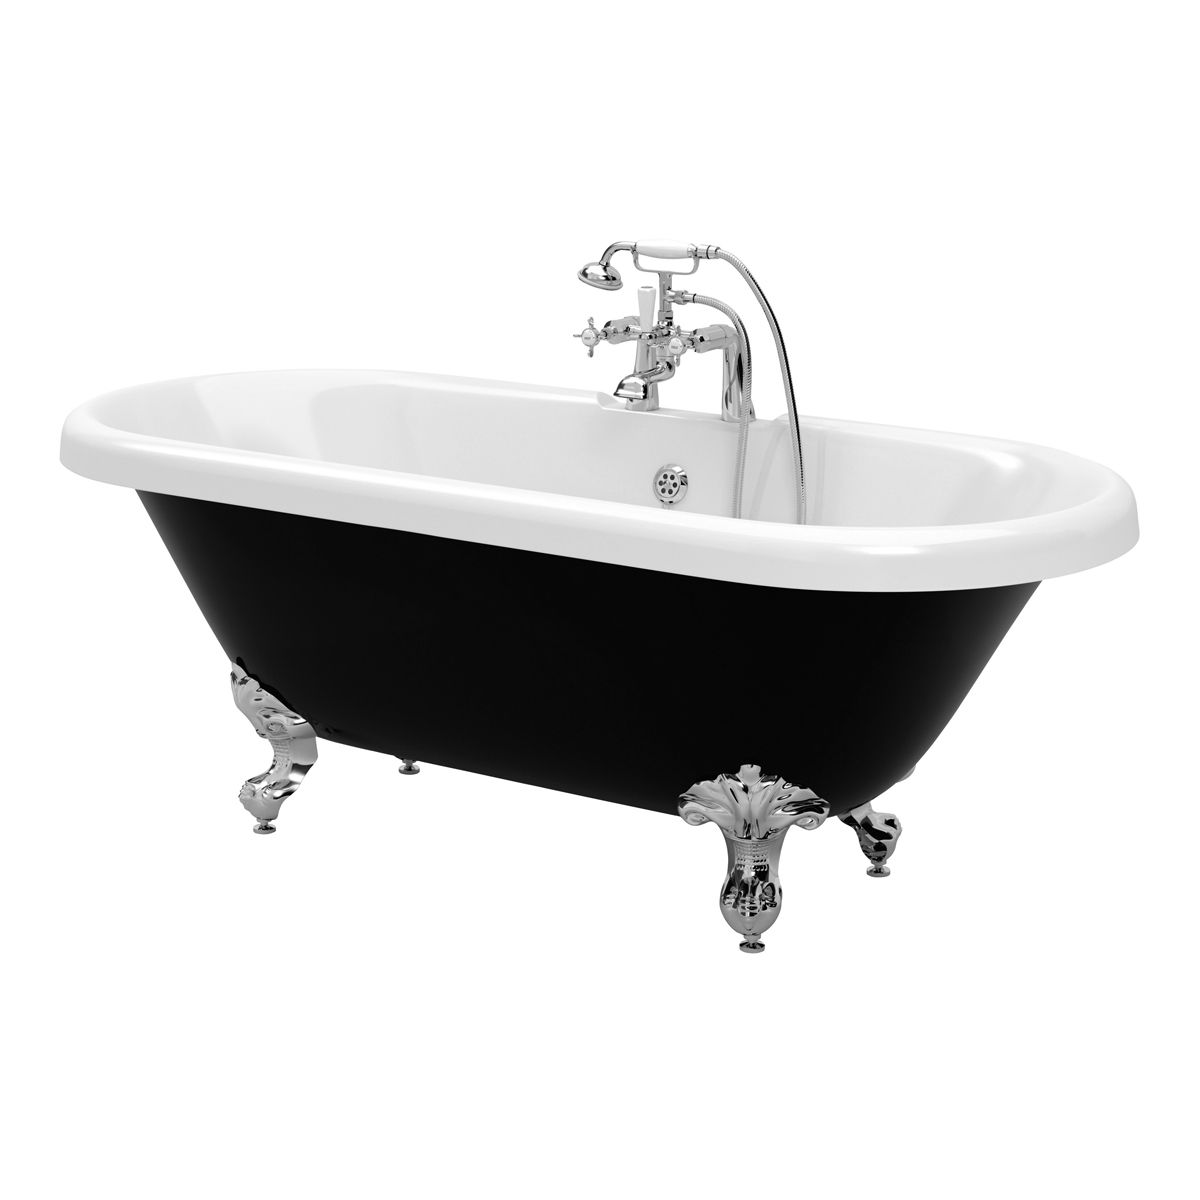 Moods Richmond Black Freestanding Roll Top Bath 1690mm